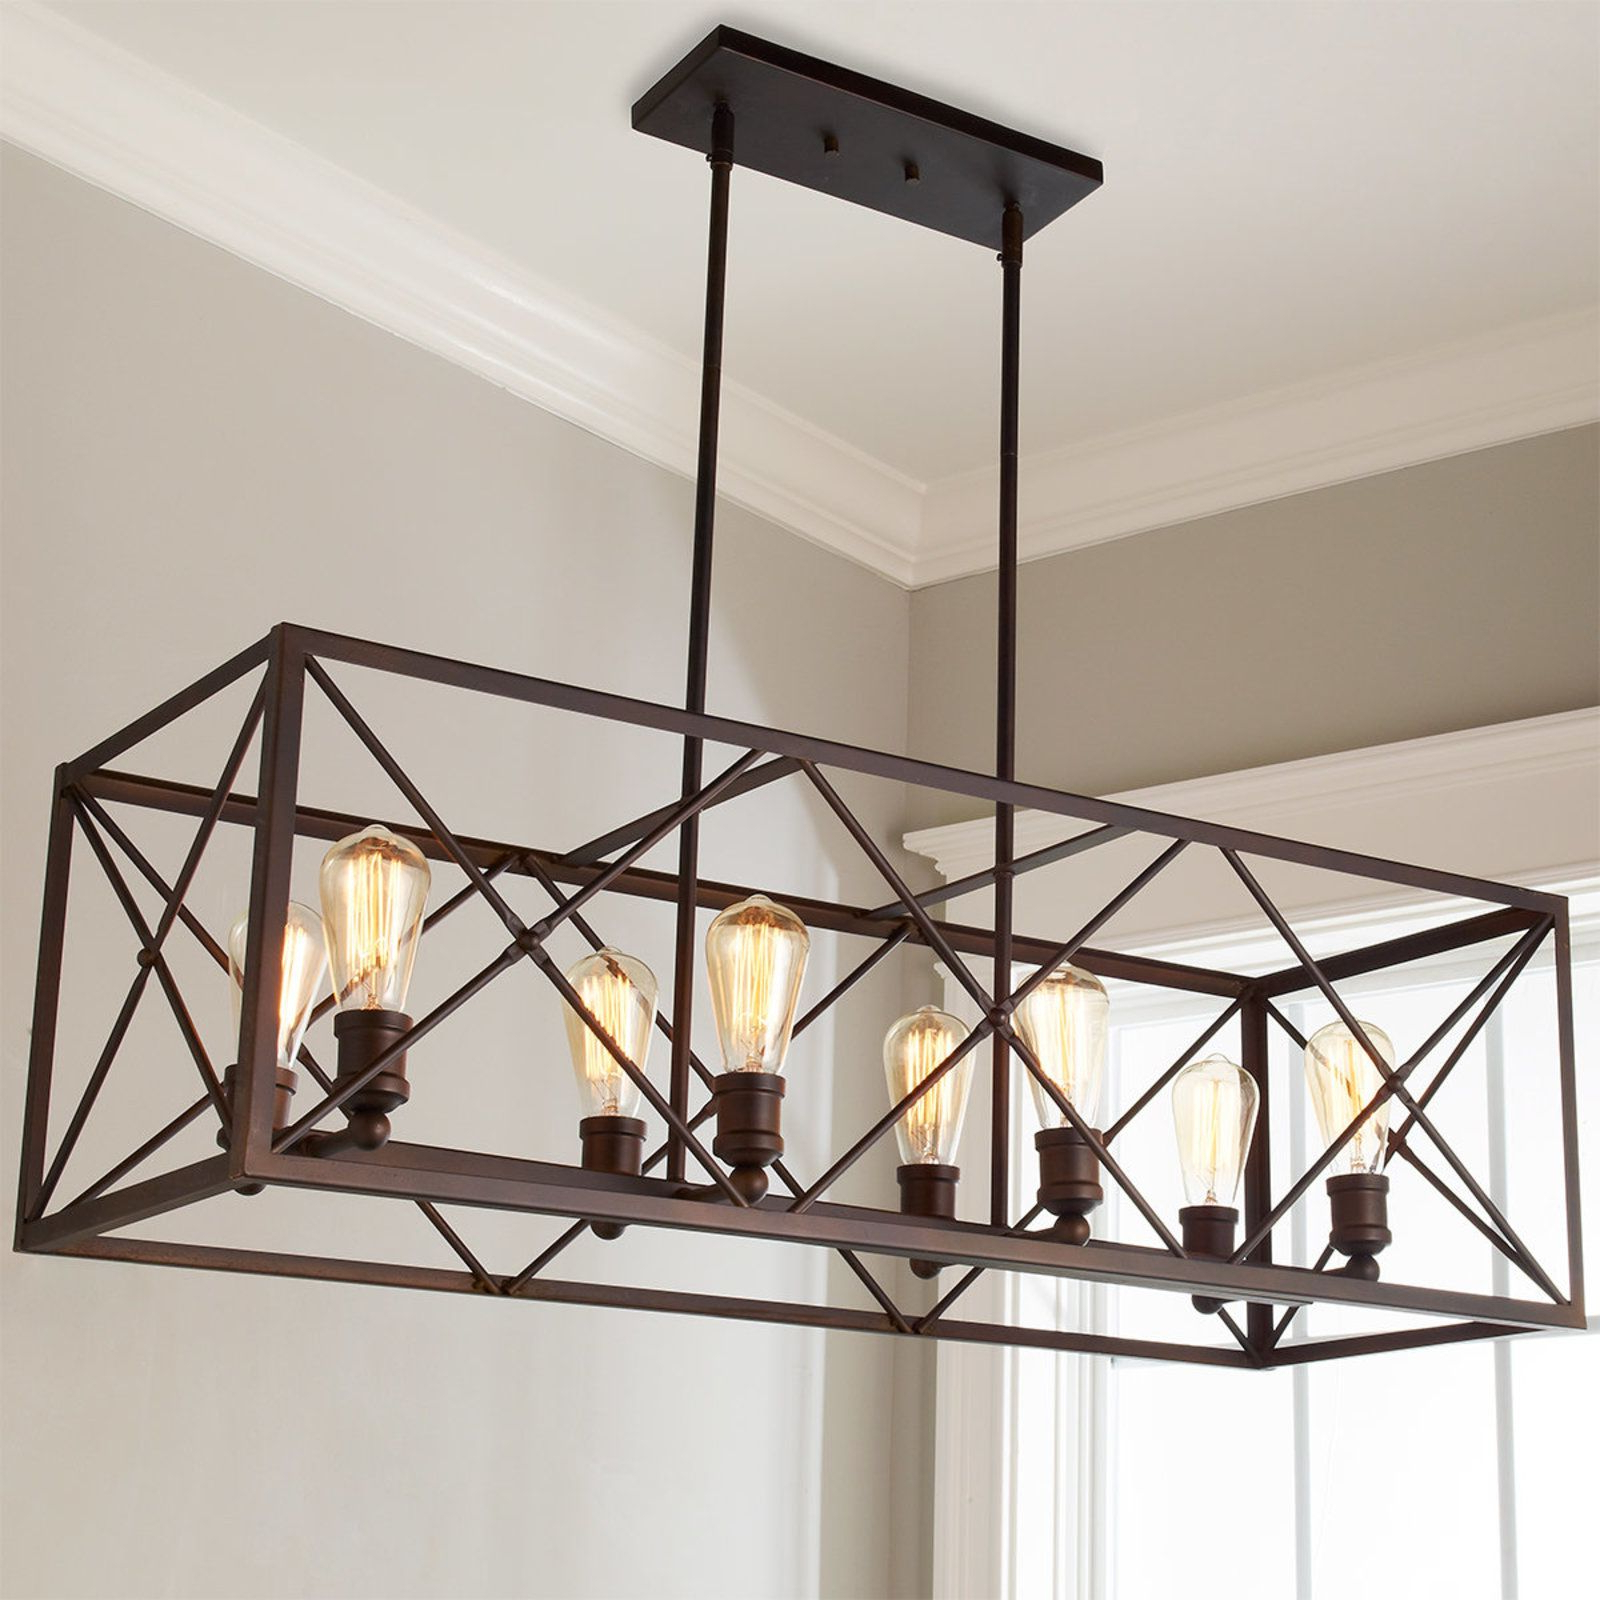 Nisbet 4 Light Lantern Geometric Pendants Regarding Well Liked Industrial Cross Framed Box Island Chandelier (View 12 of 20)